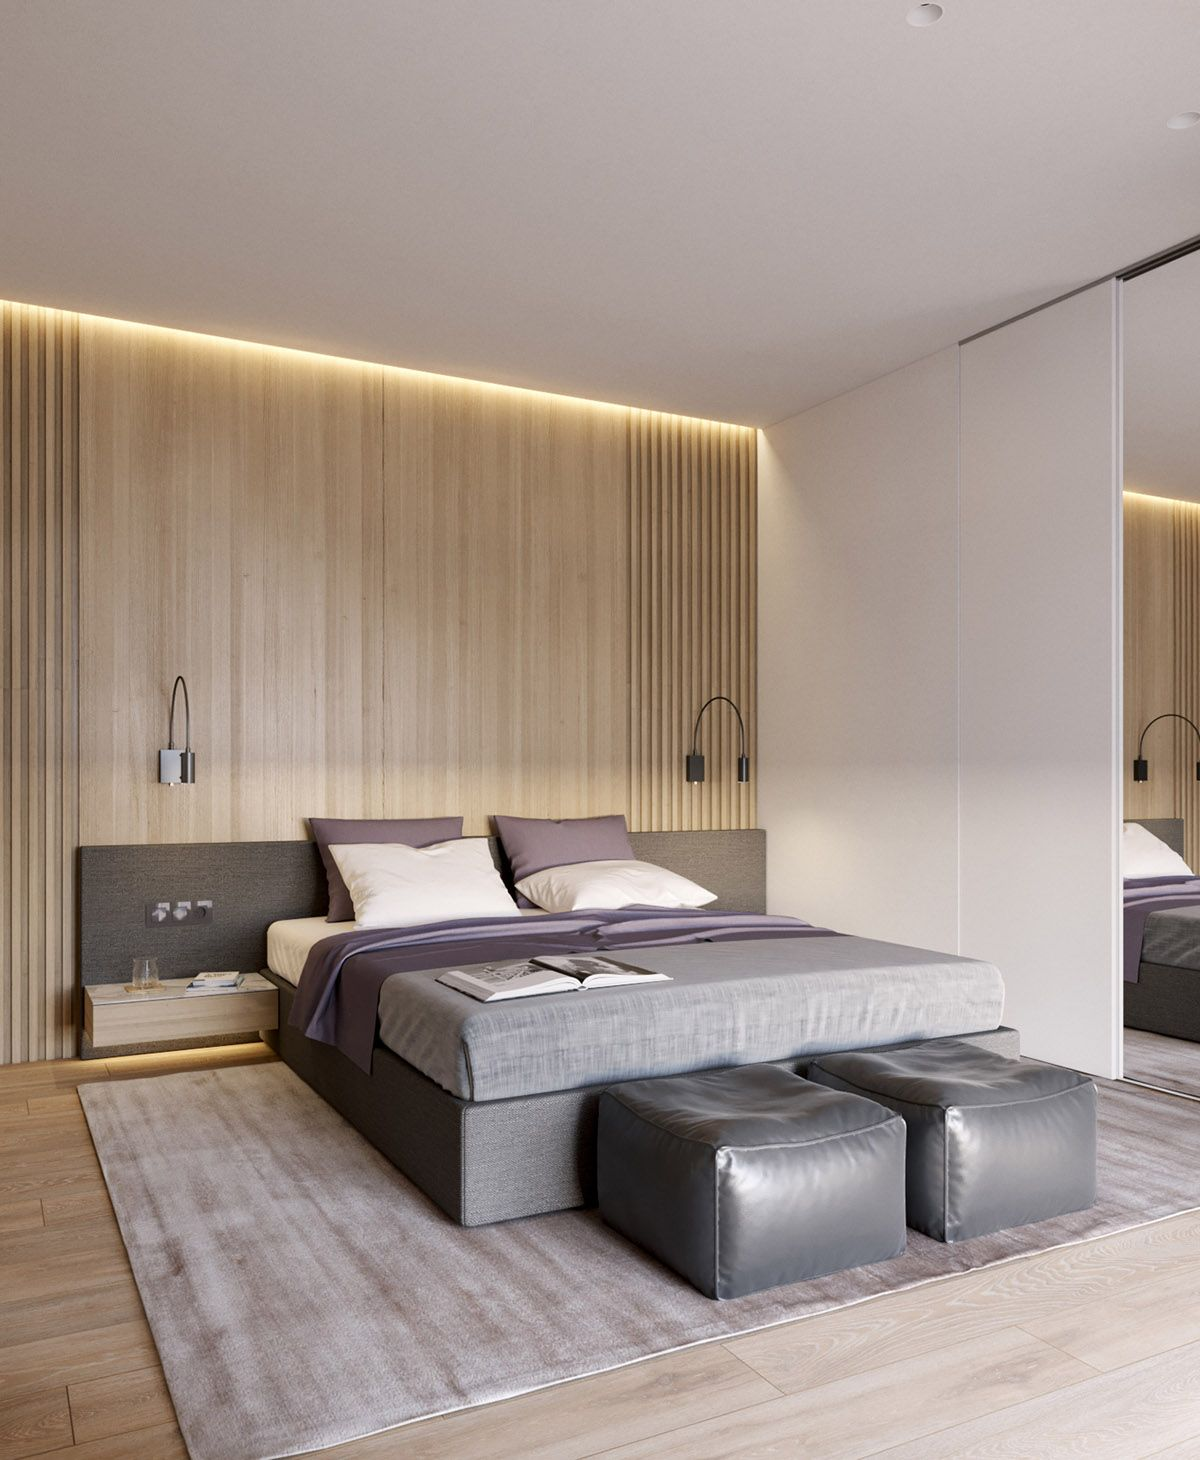 Modern Homes Bedrooms Designs Best Bedrooms Designs Ideas: Pastel Accents Over Expansive Light Wood In Two Modern